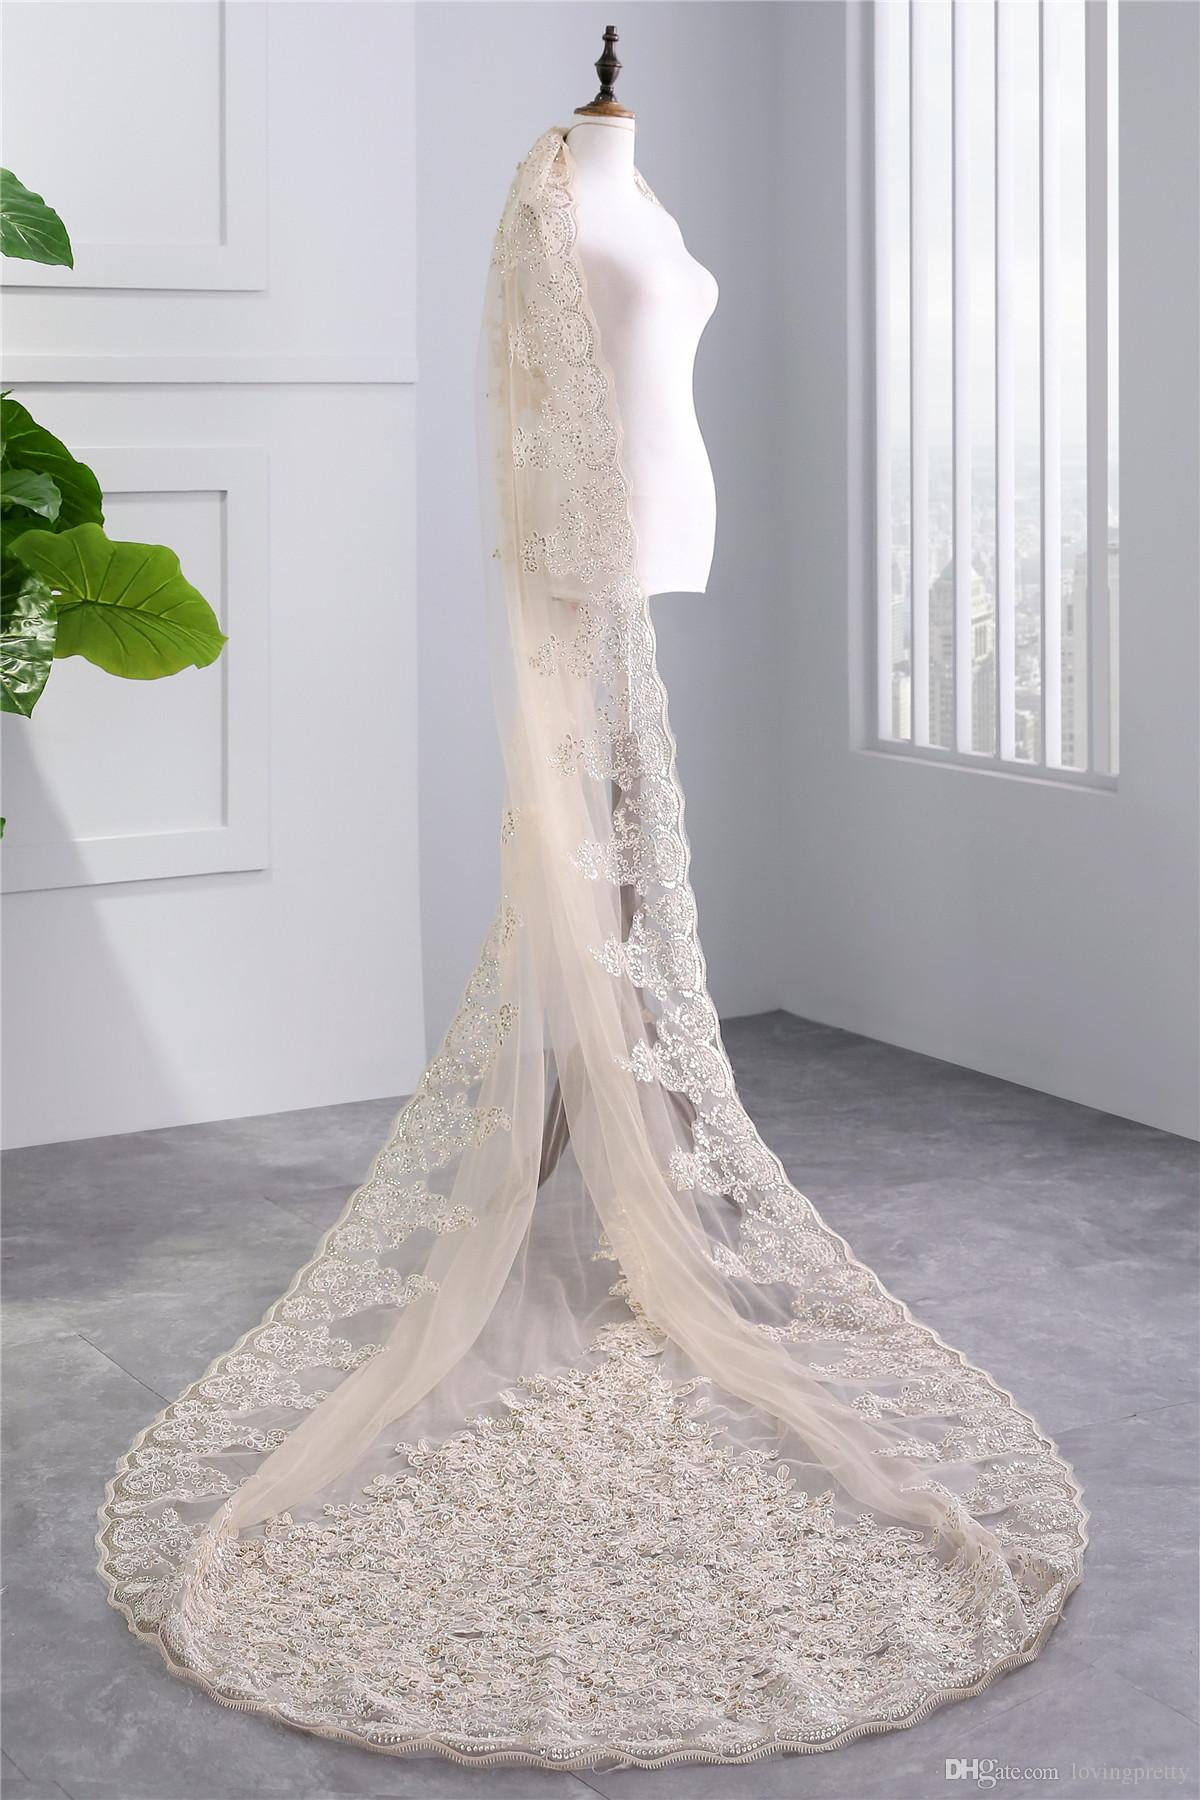 JaneVini Luxurious Long Wedding Veil Lace Edge Sequined One Layer Champagne Cathedral Length Bridal Veils with Comb Voile Mariage Longues